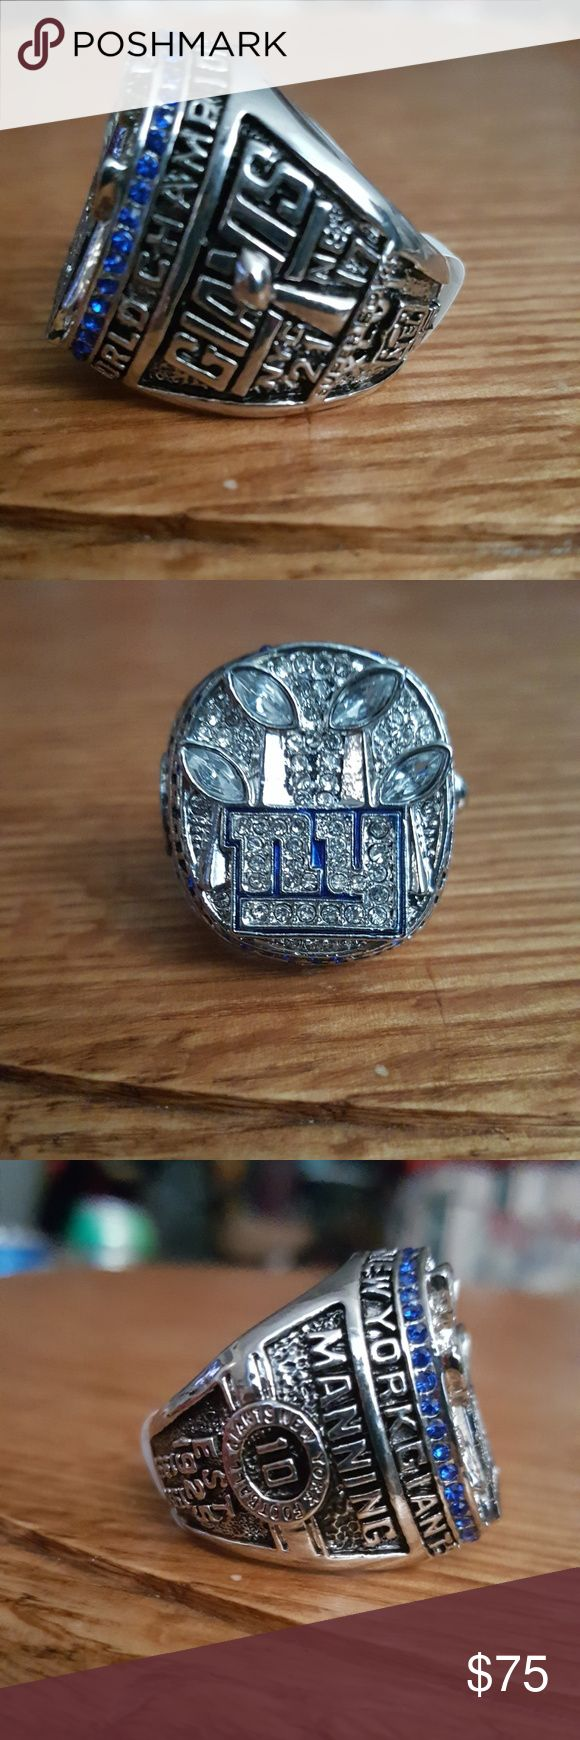 NY Giants super bowl ring peton manning ,htf, brand new Accessories Jewelry